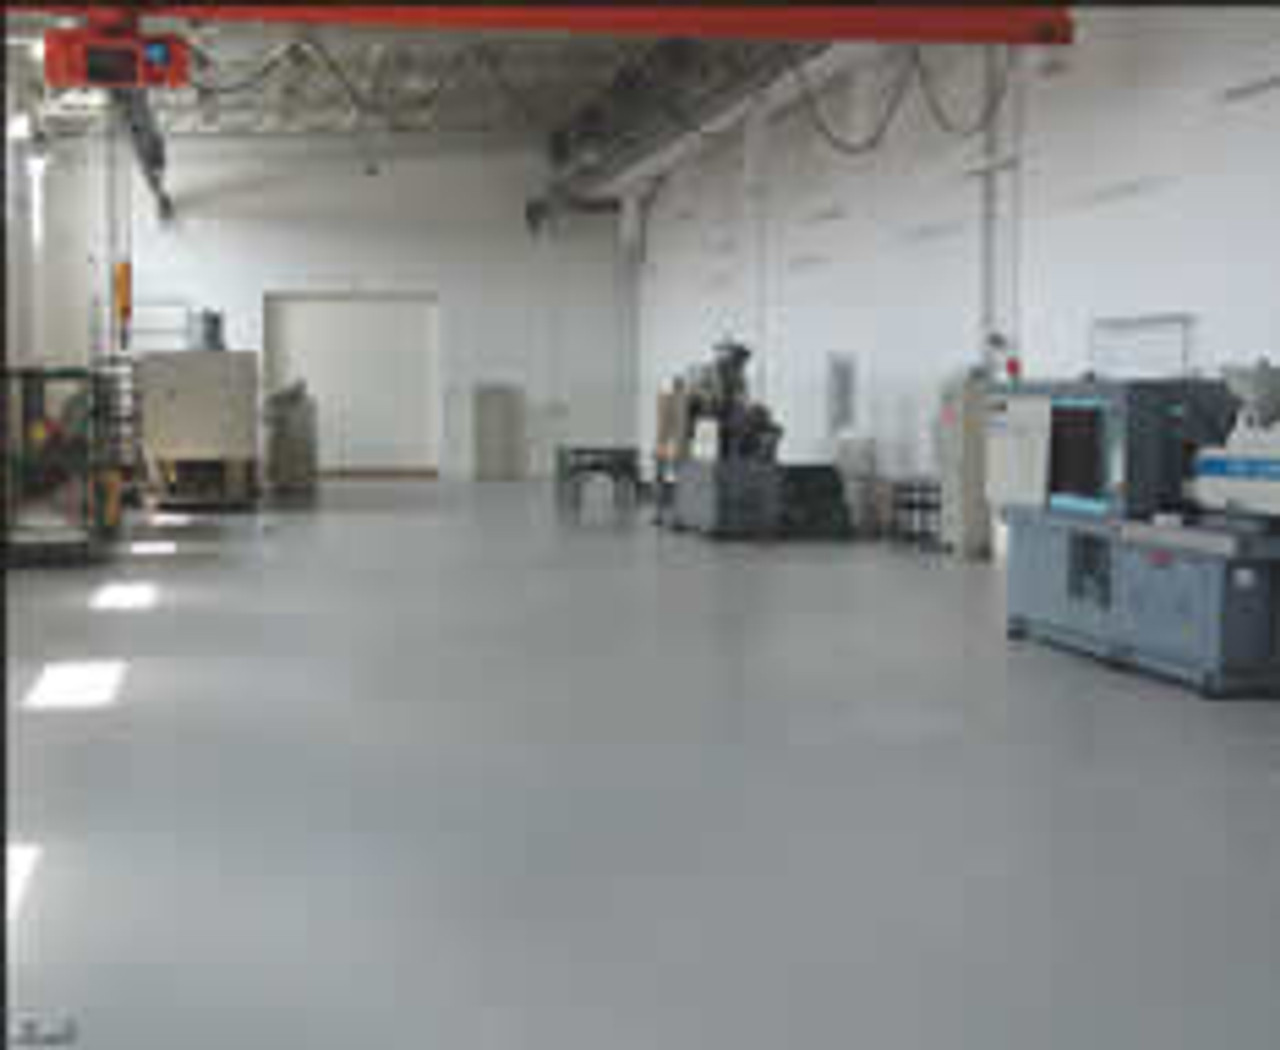 SealGreen Garage Floor Sealer is a perfect application for warehouse and shop floors where forklift traffic is present